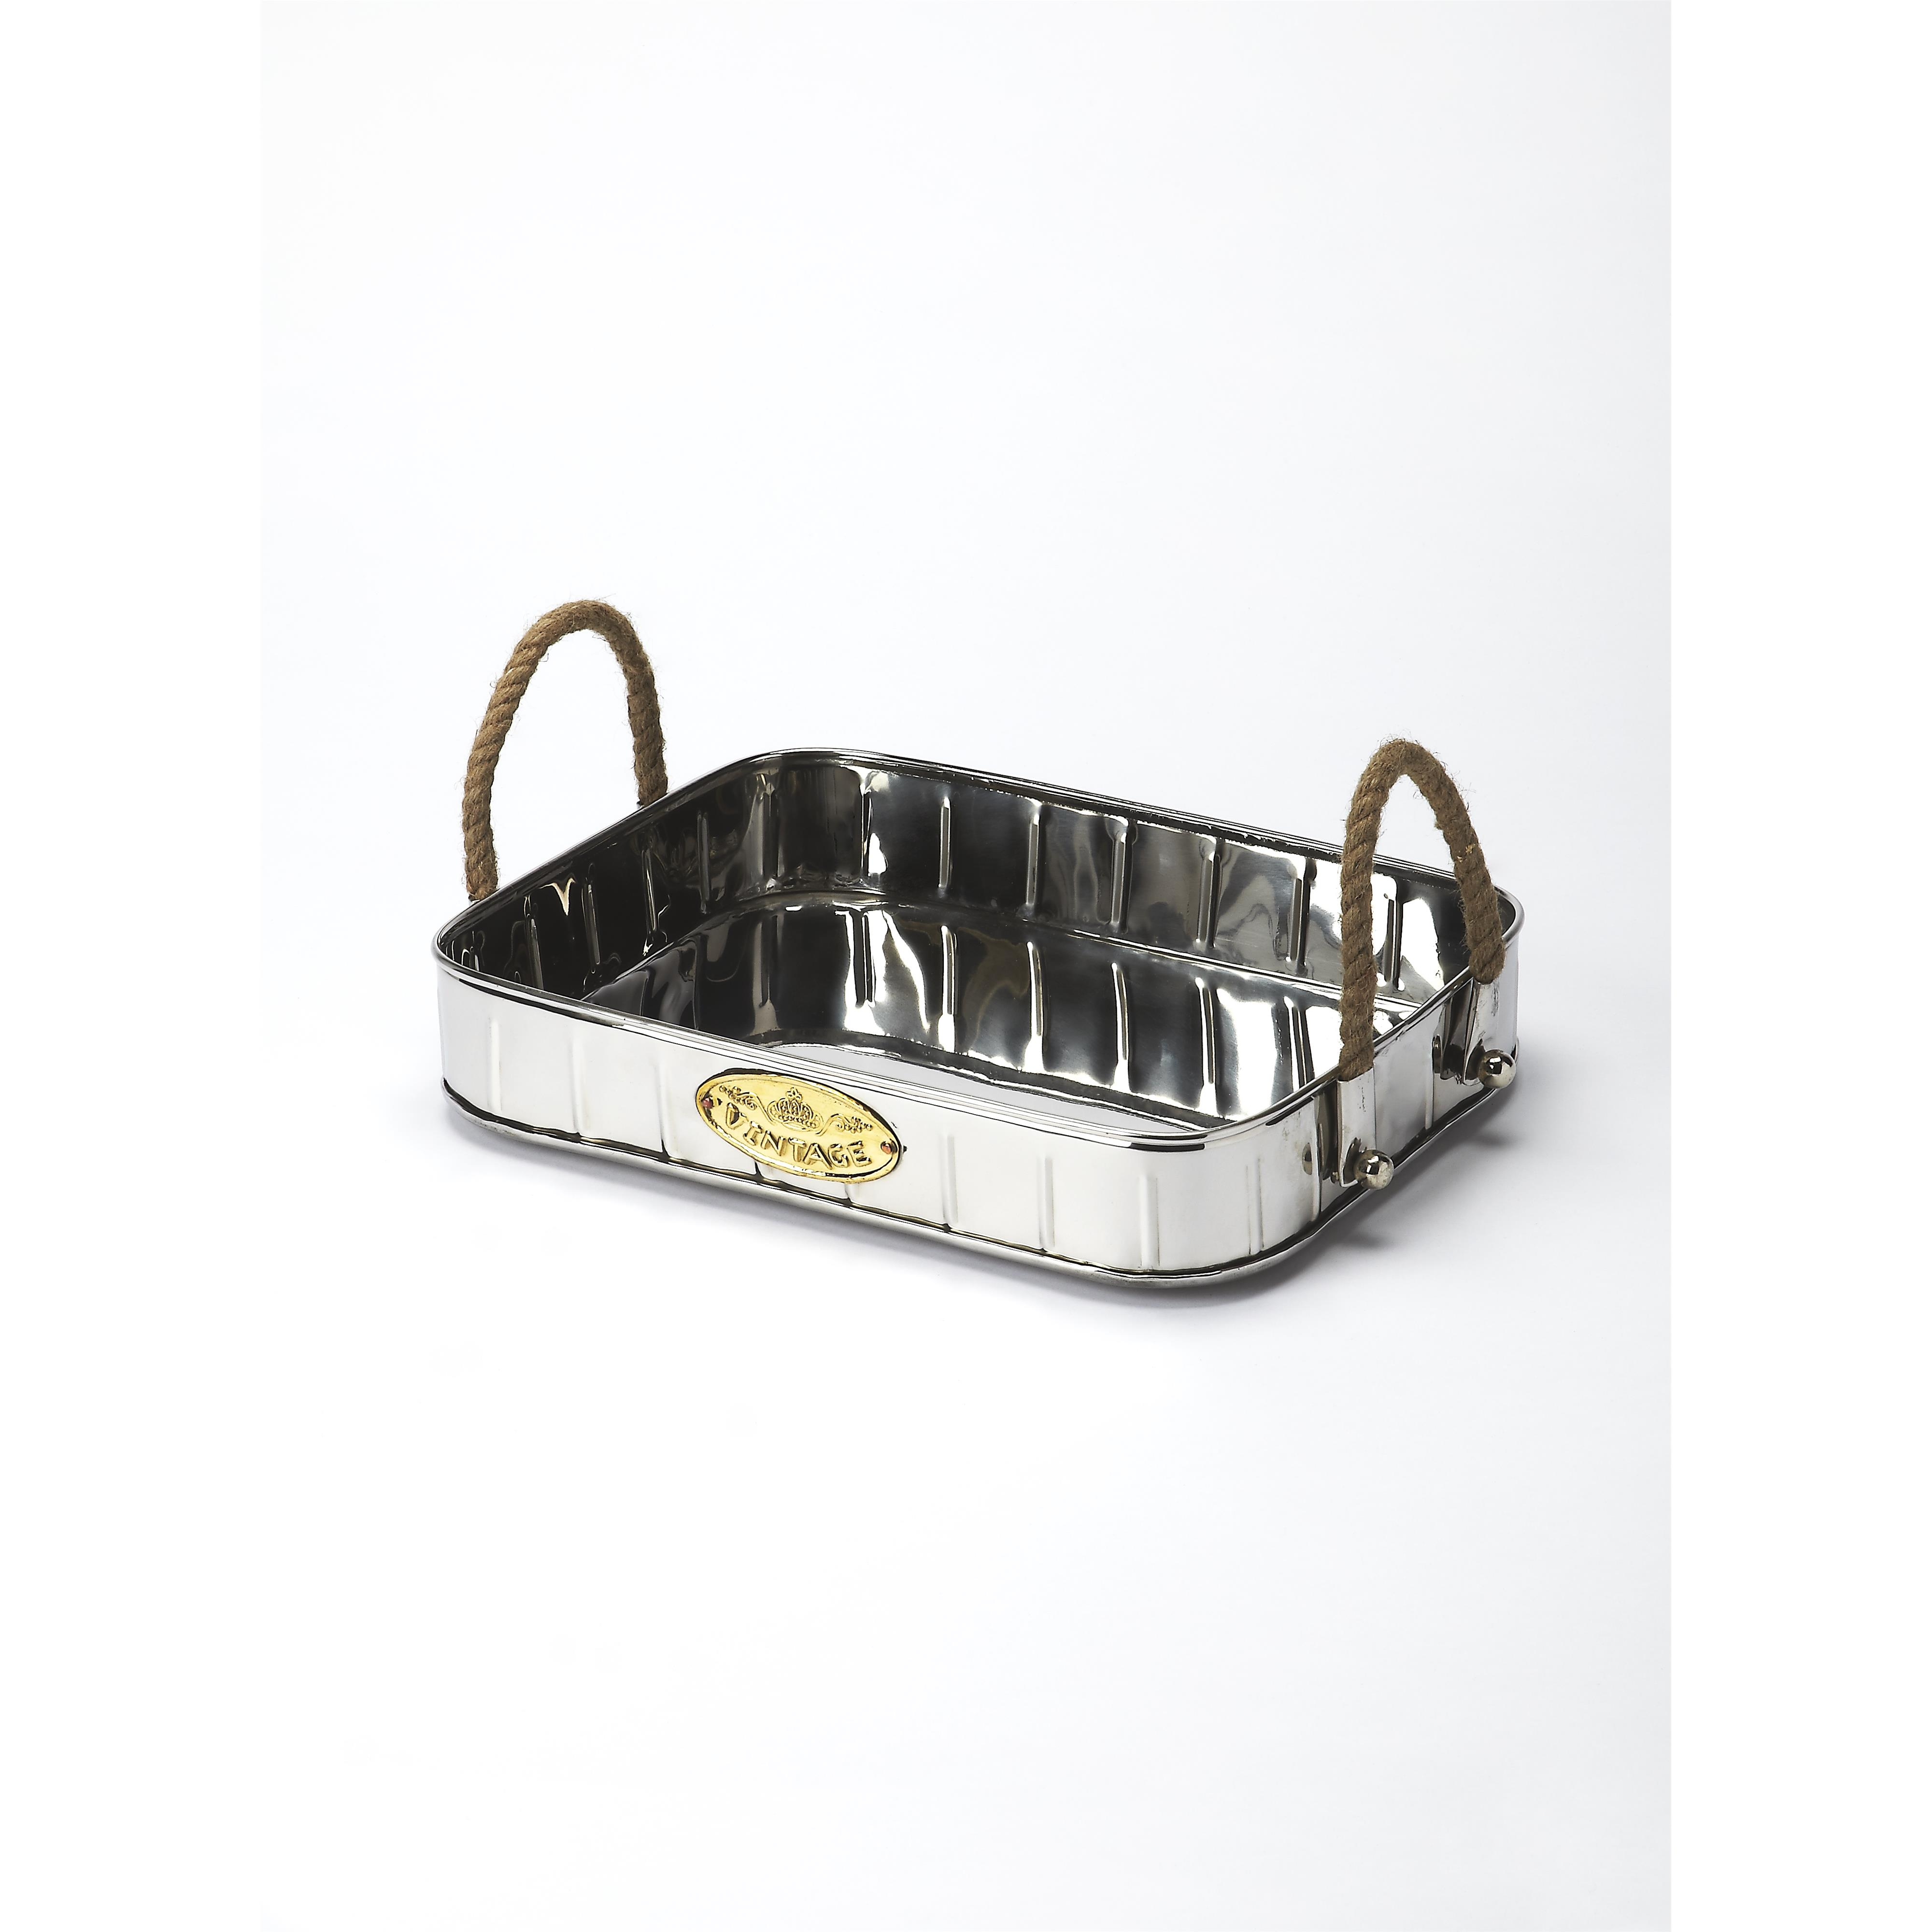 Butler Specialty Company Hors D'oeuvres Serving Tray - Item Number: 3587016